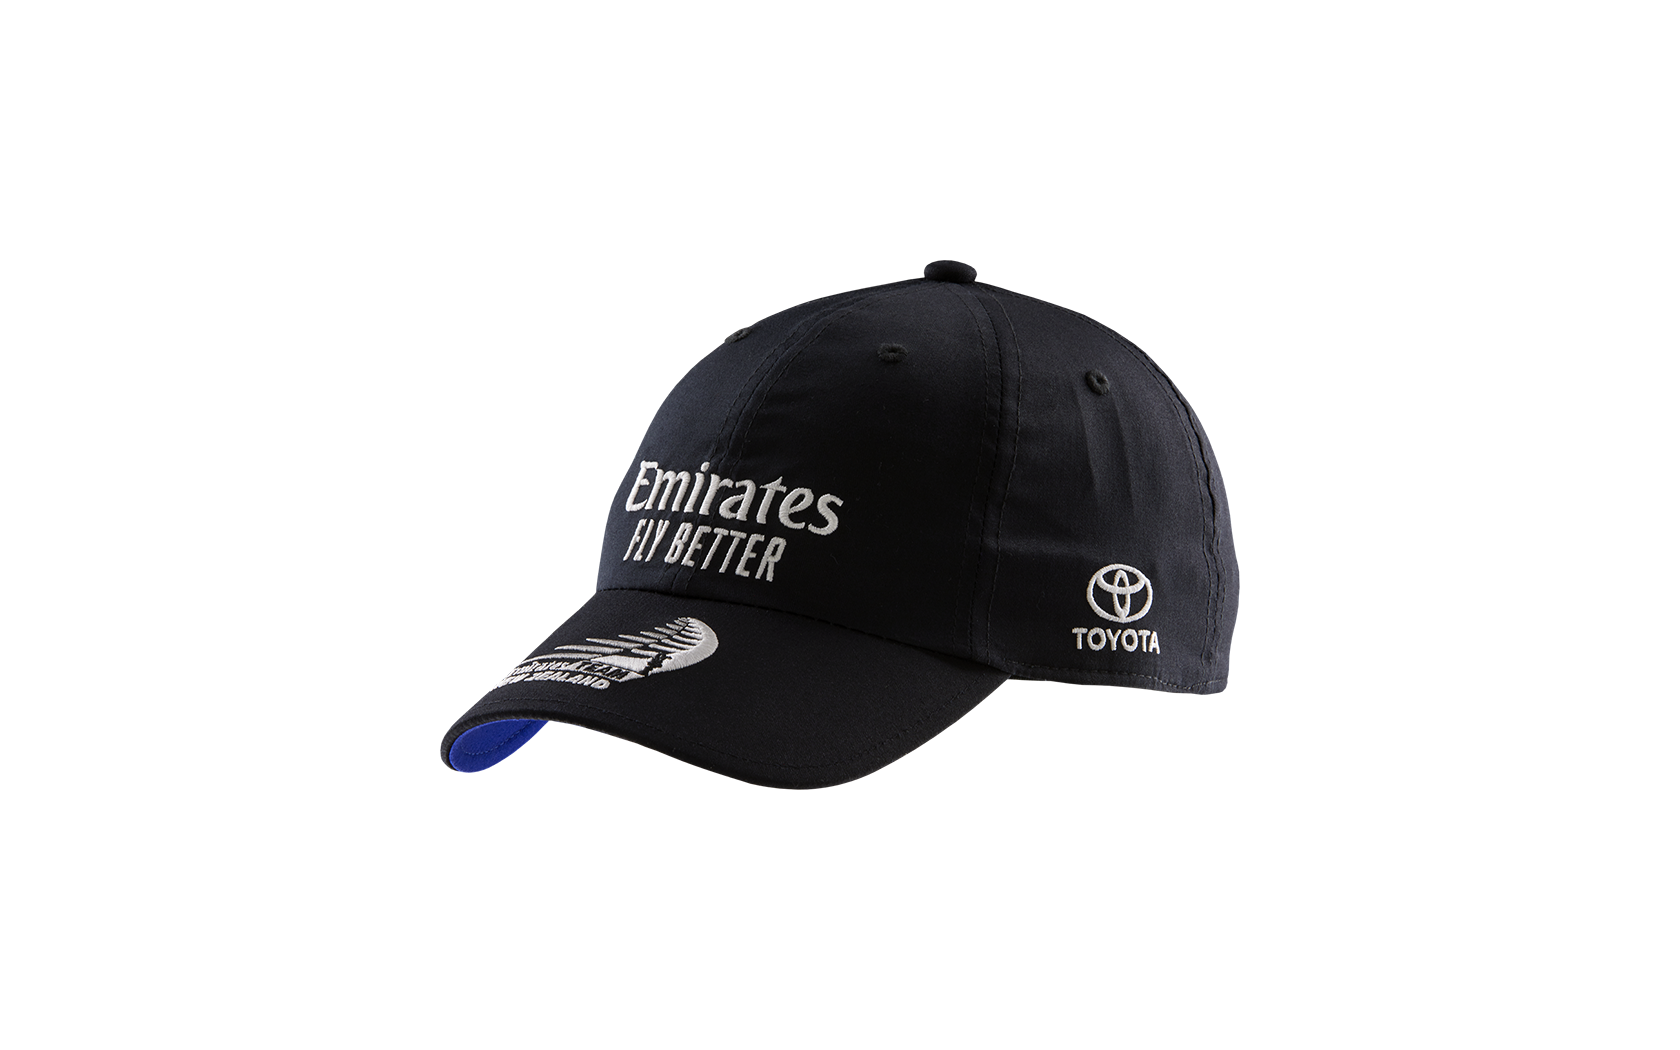 ETNZ TEAM COTTON CAP